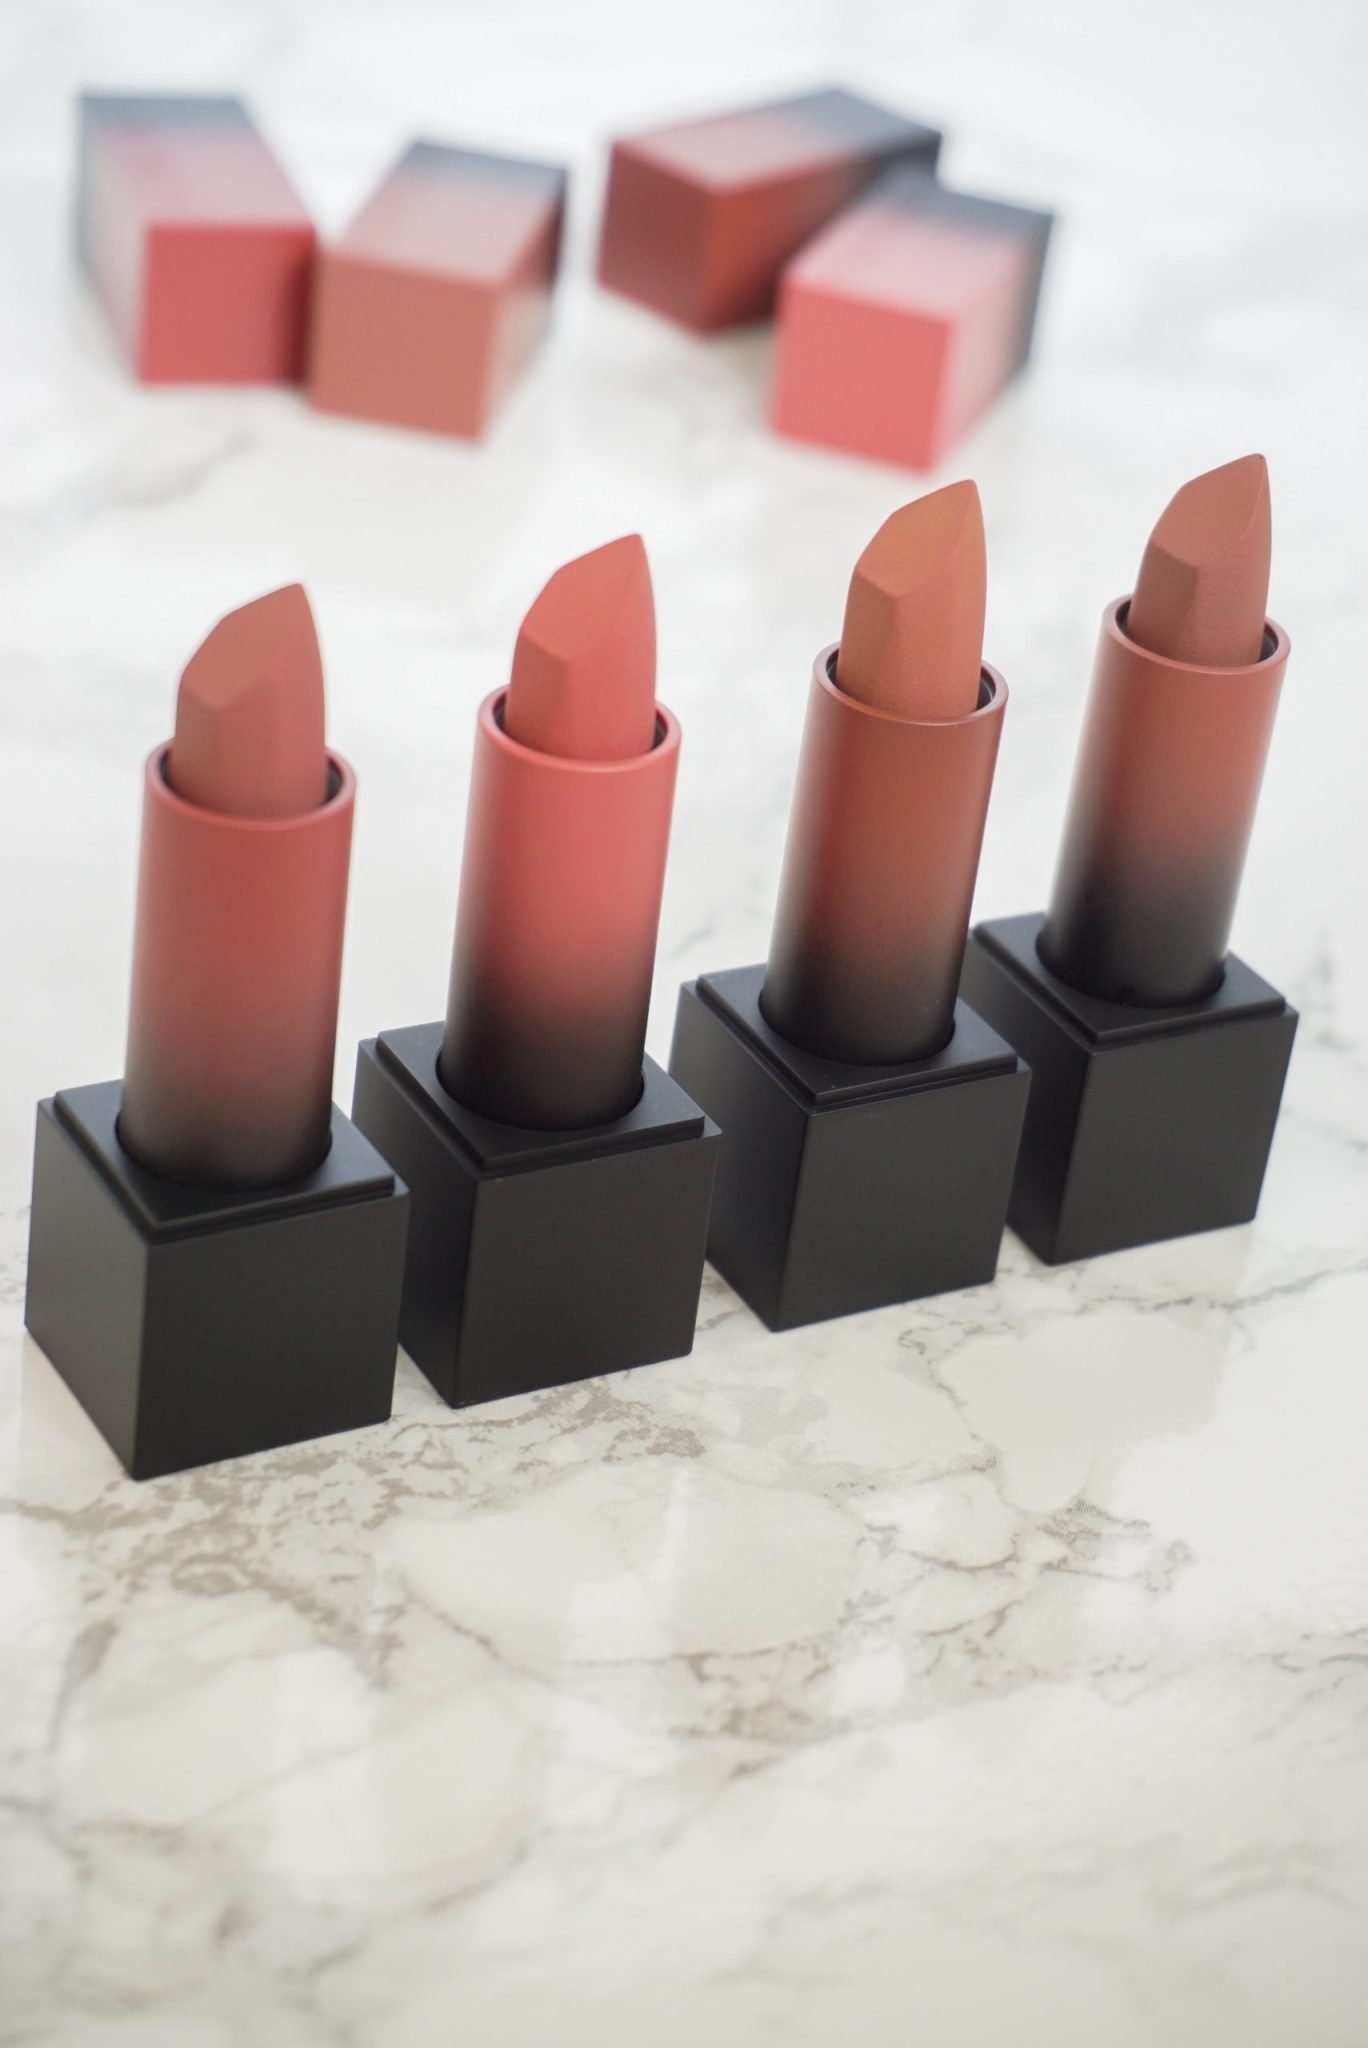 National Lipstick Day Haul: I Got 10 Huda Beauty Lipsticks During Their BOGO Sale ⋆ Beautymone